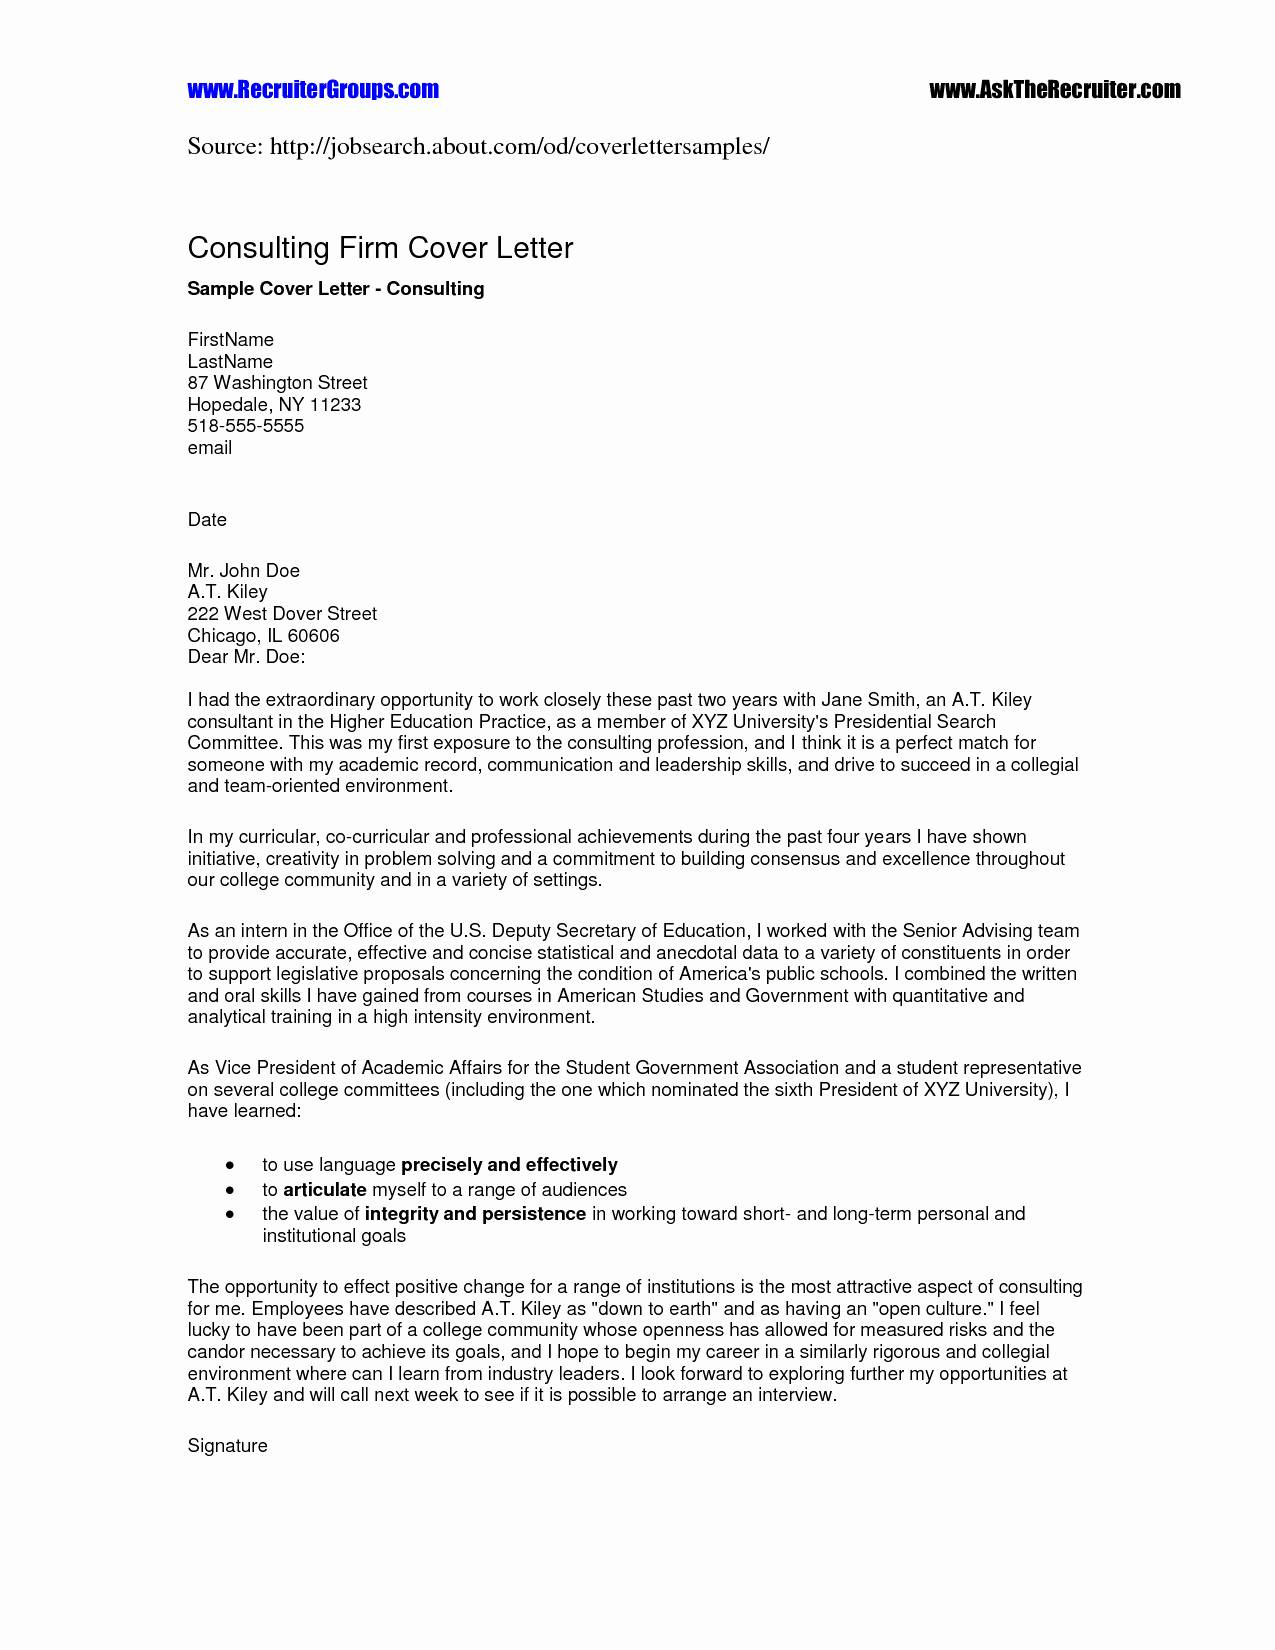 Artist Cover Letter Template - Art Teacher Cover Letters Lovely Sample Cover Letter Consultant